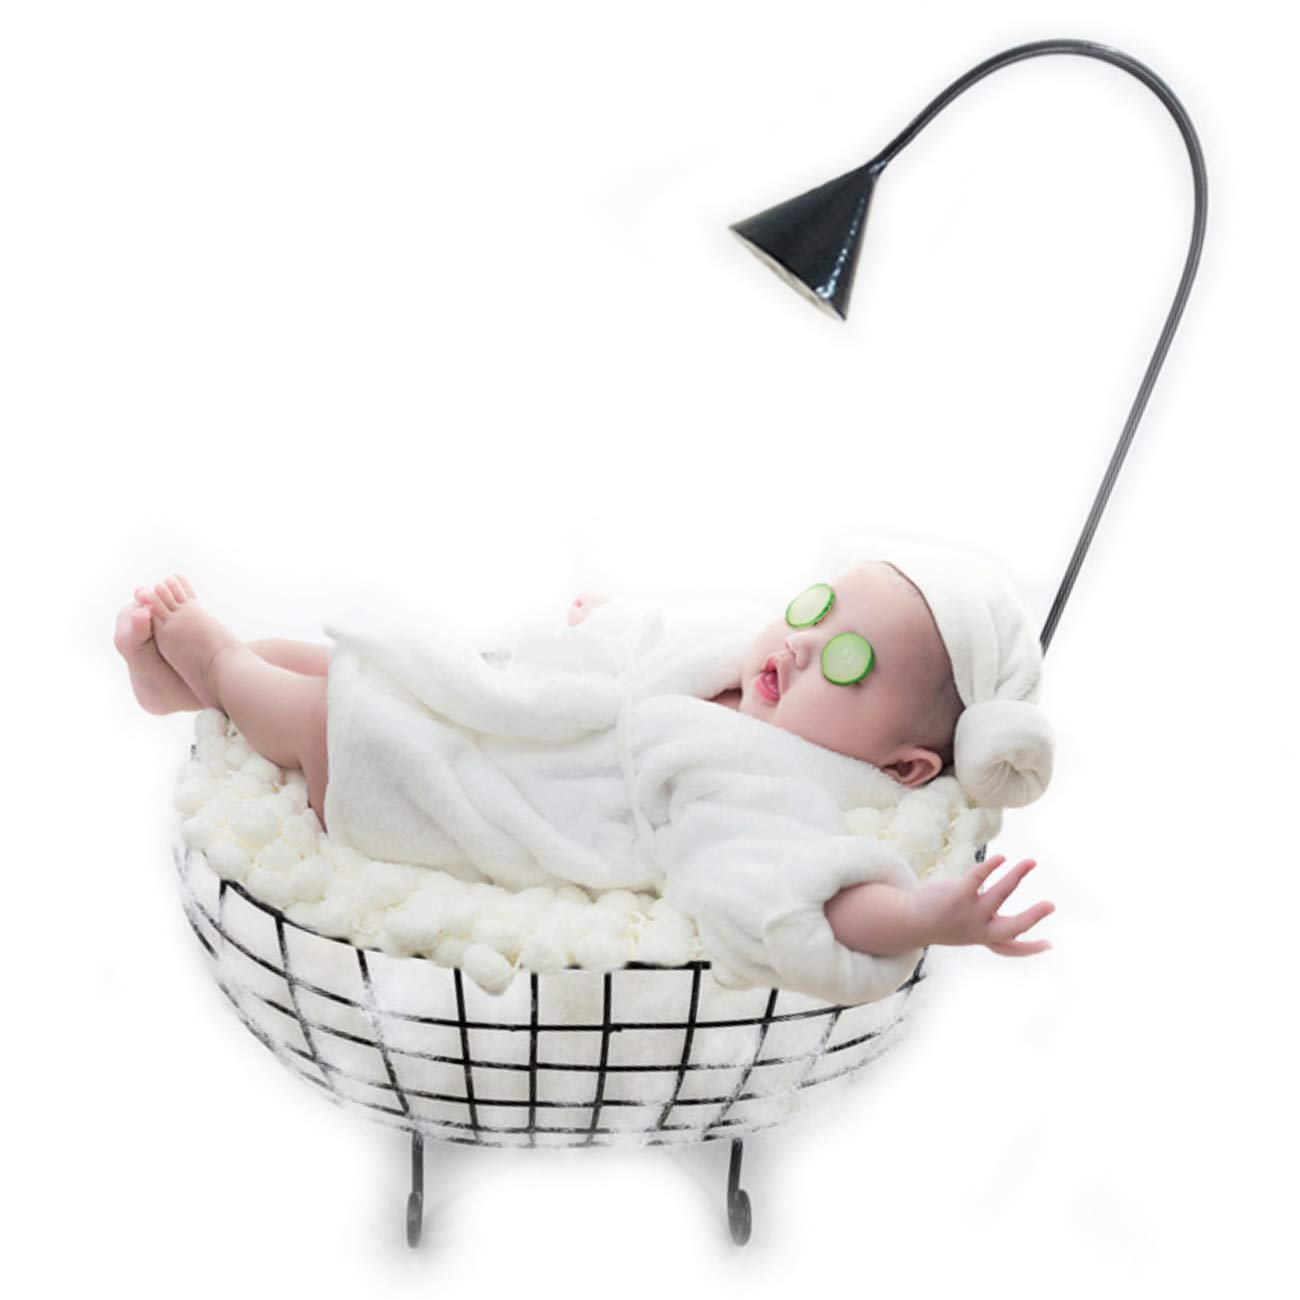 Newborn Baby Photography Props Basket, Baby Photo Props Bathtub, Professional Photography Posing Prop for Boy Girl Black by M&G House